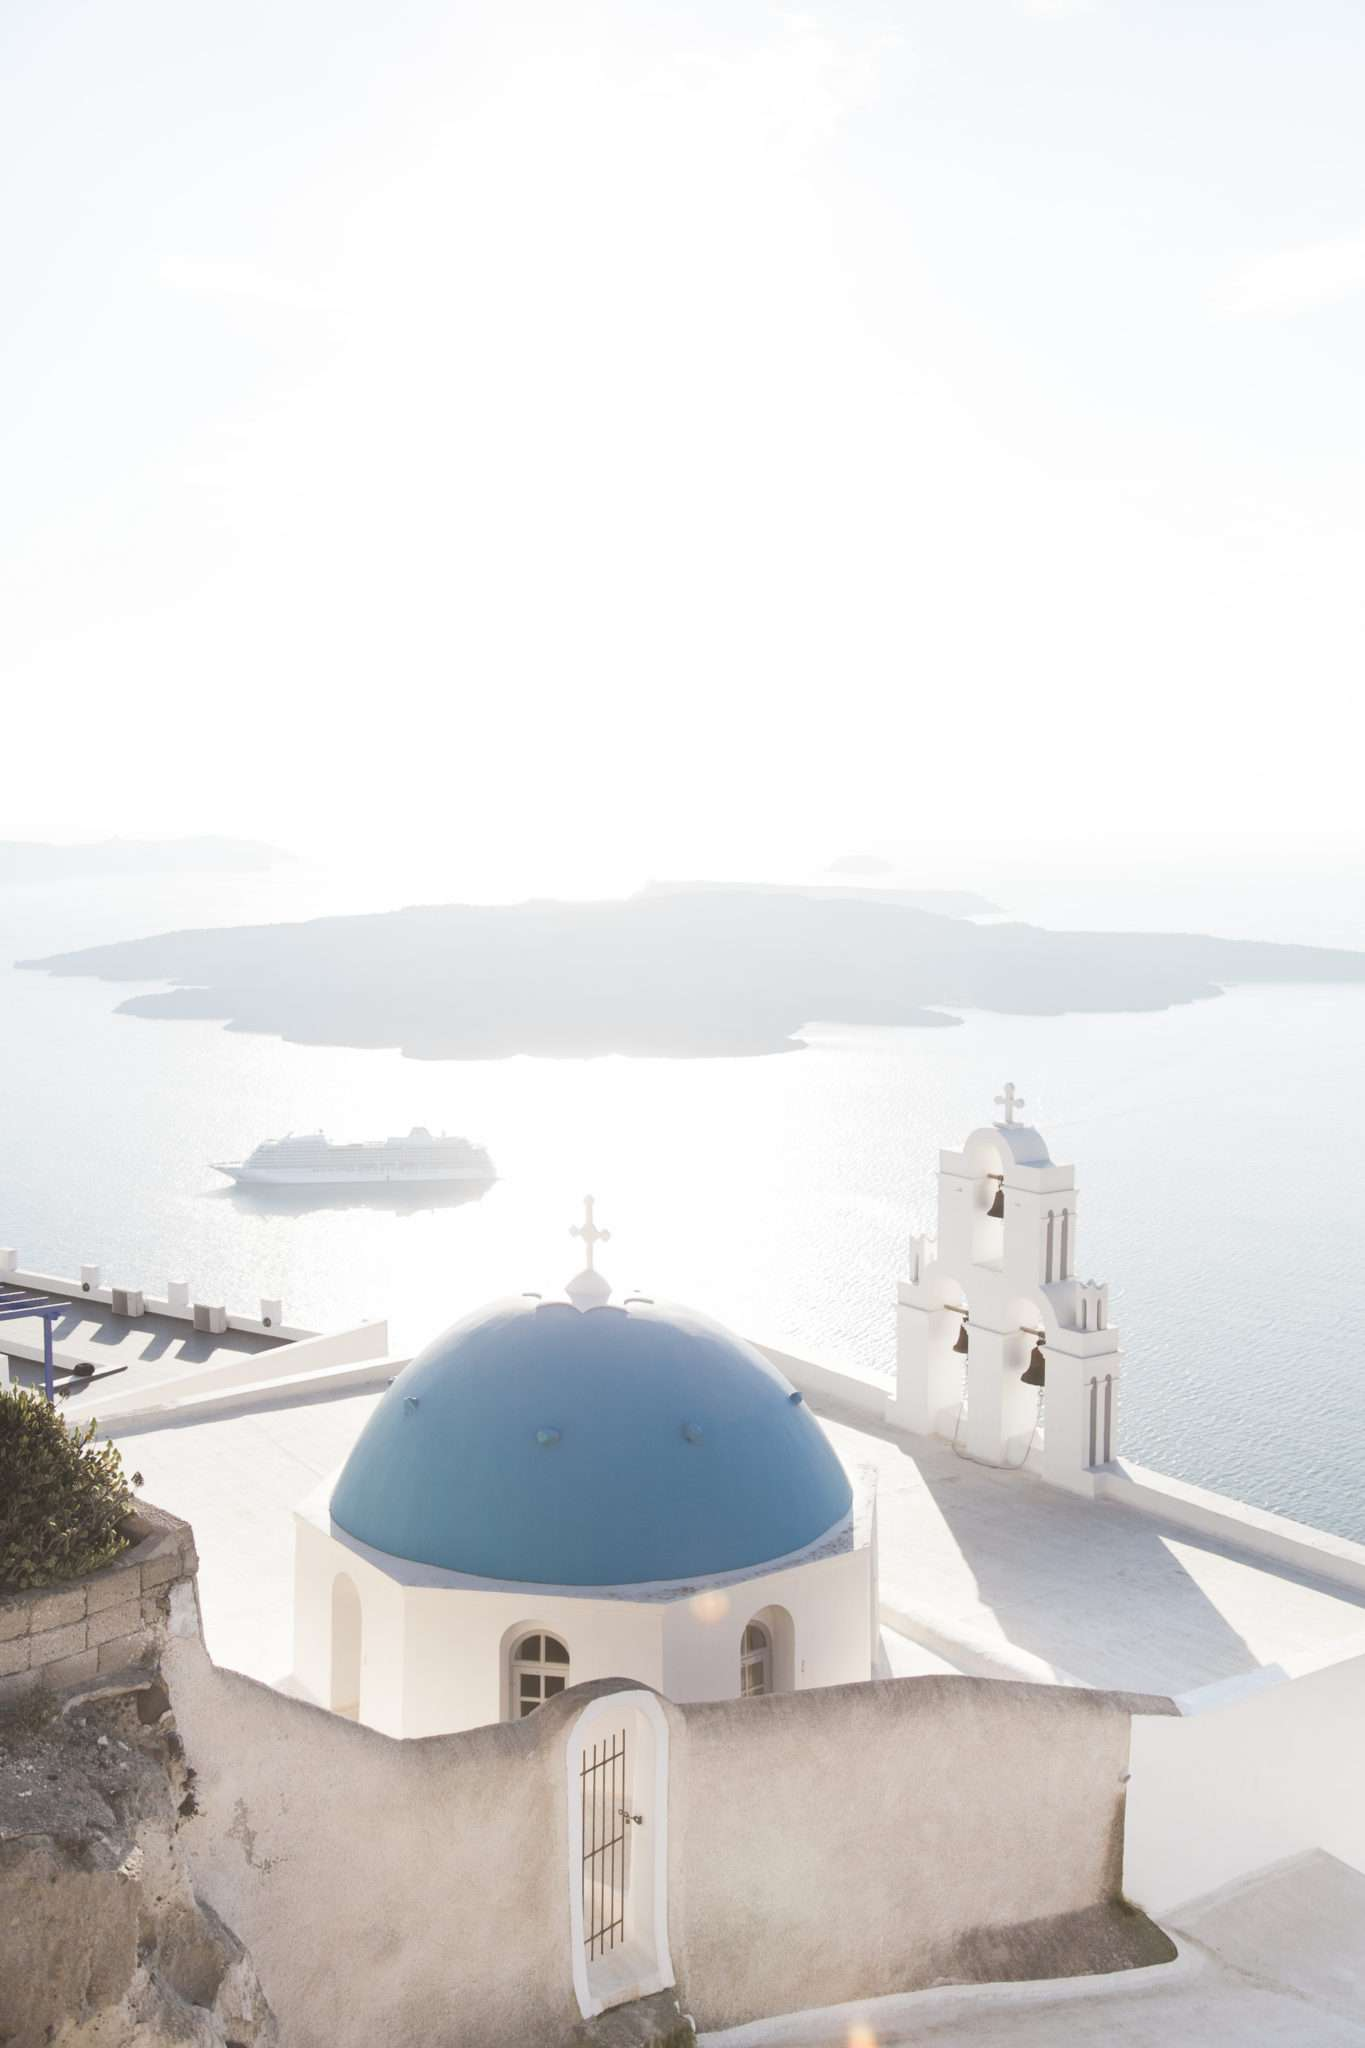 santorini white and blue landscape